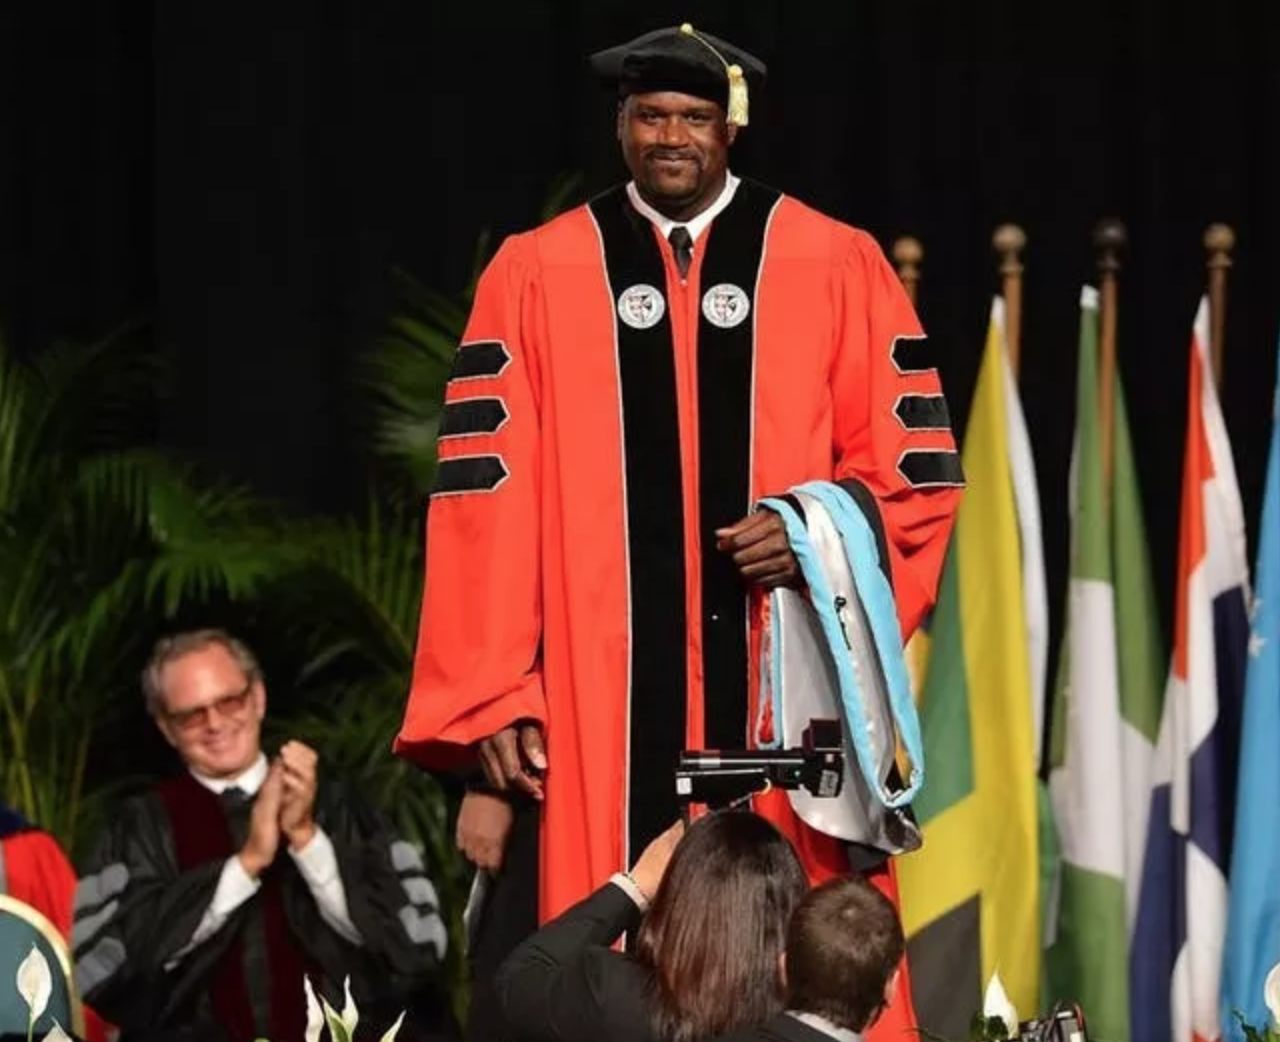 Former pro basketball player Shaquille O'Neal, receiving his doctorate in education from Barry University.